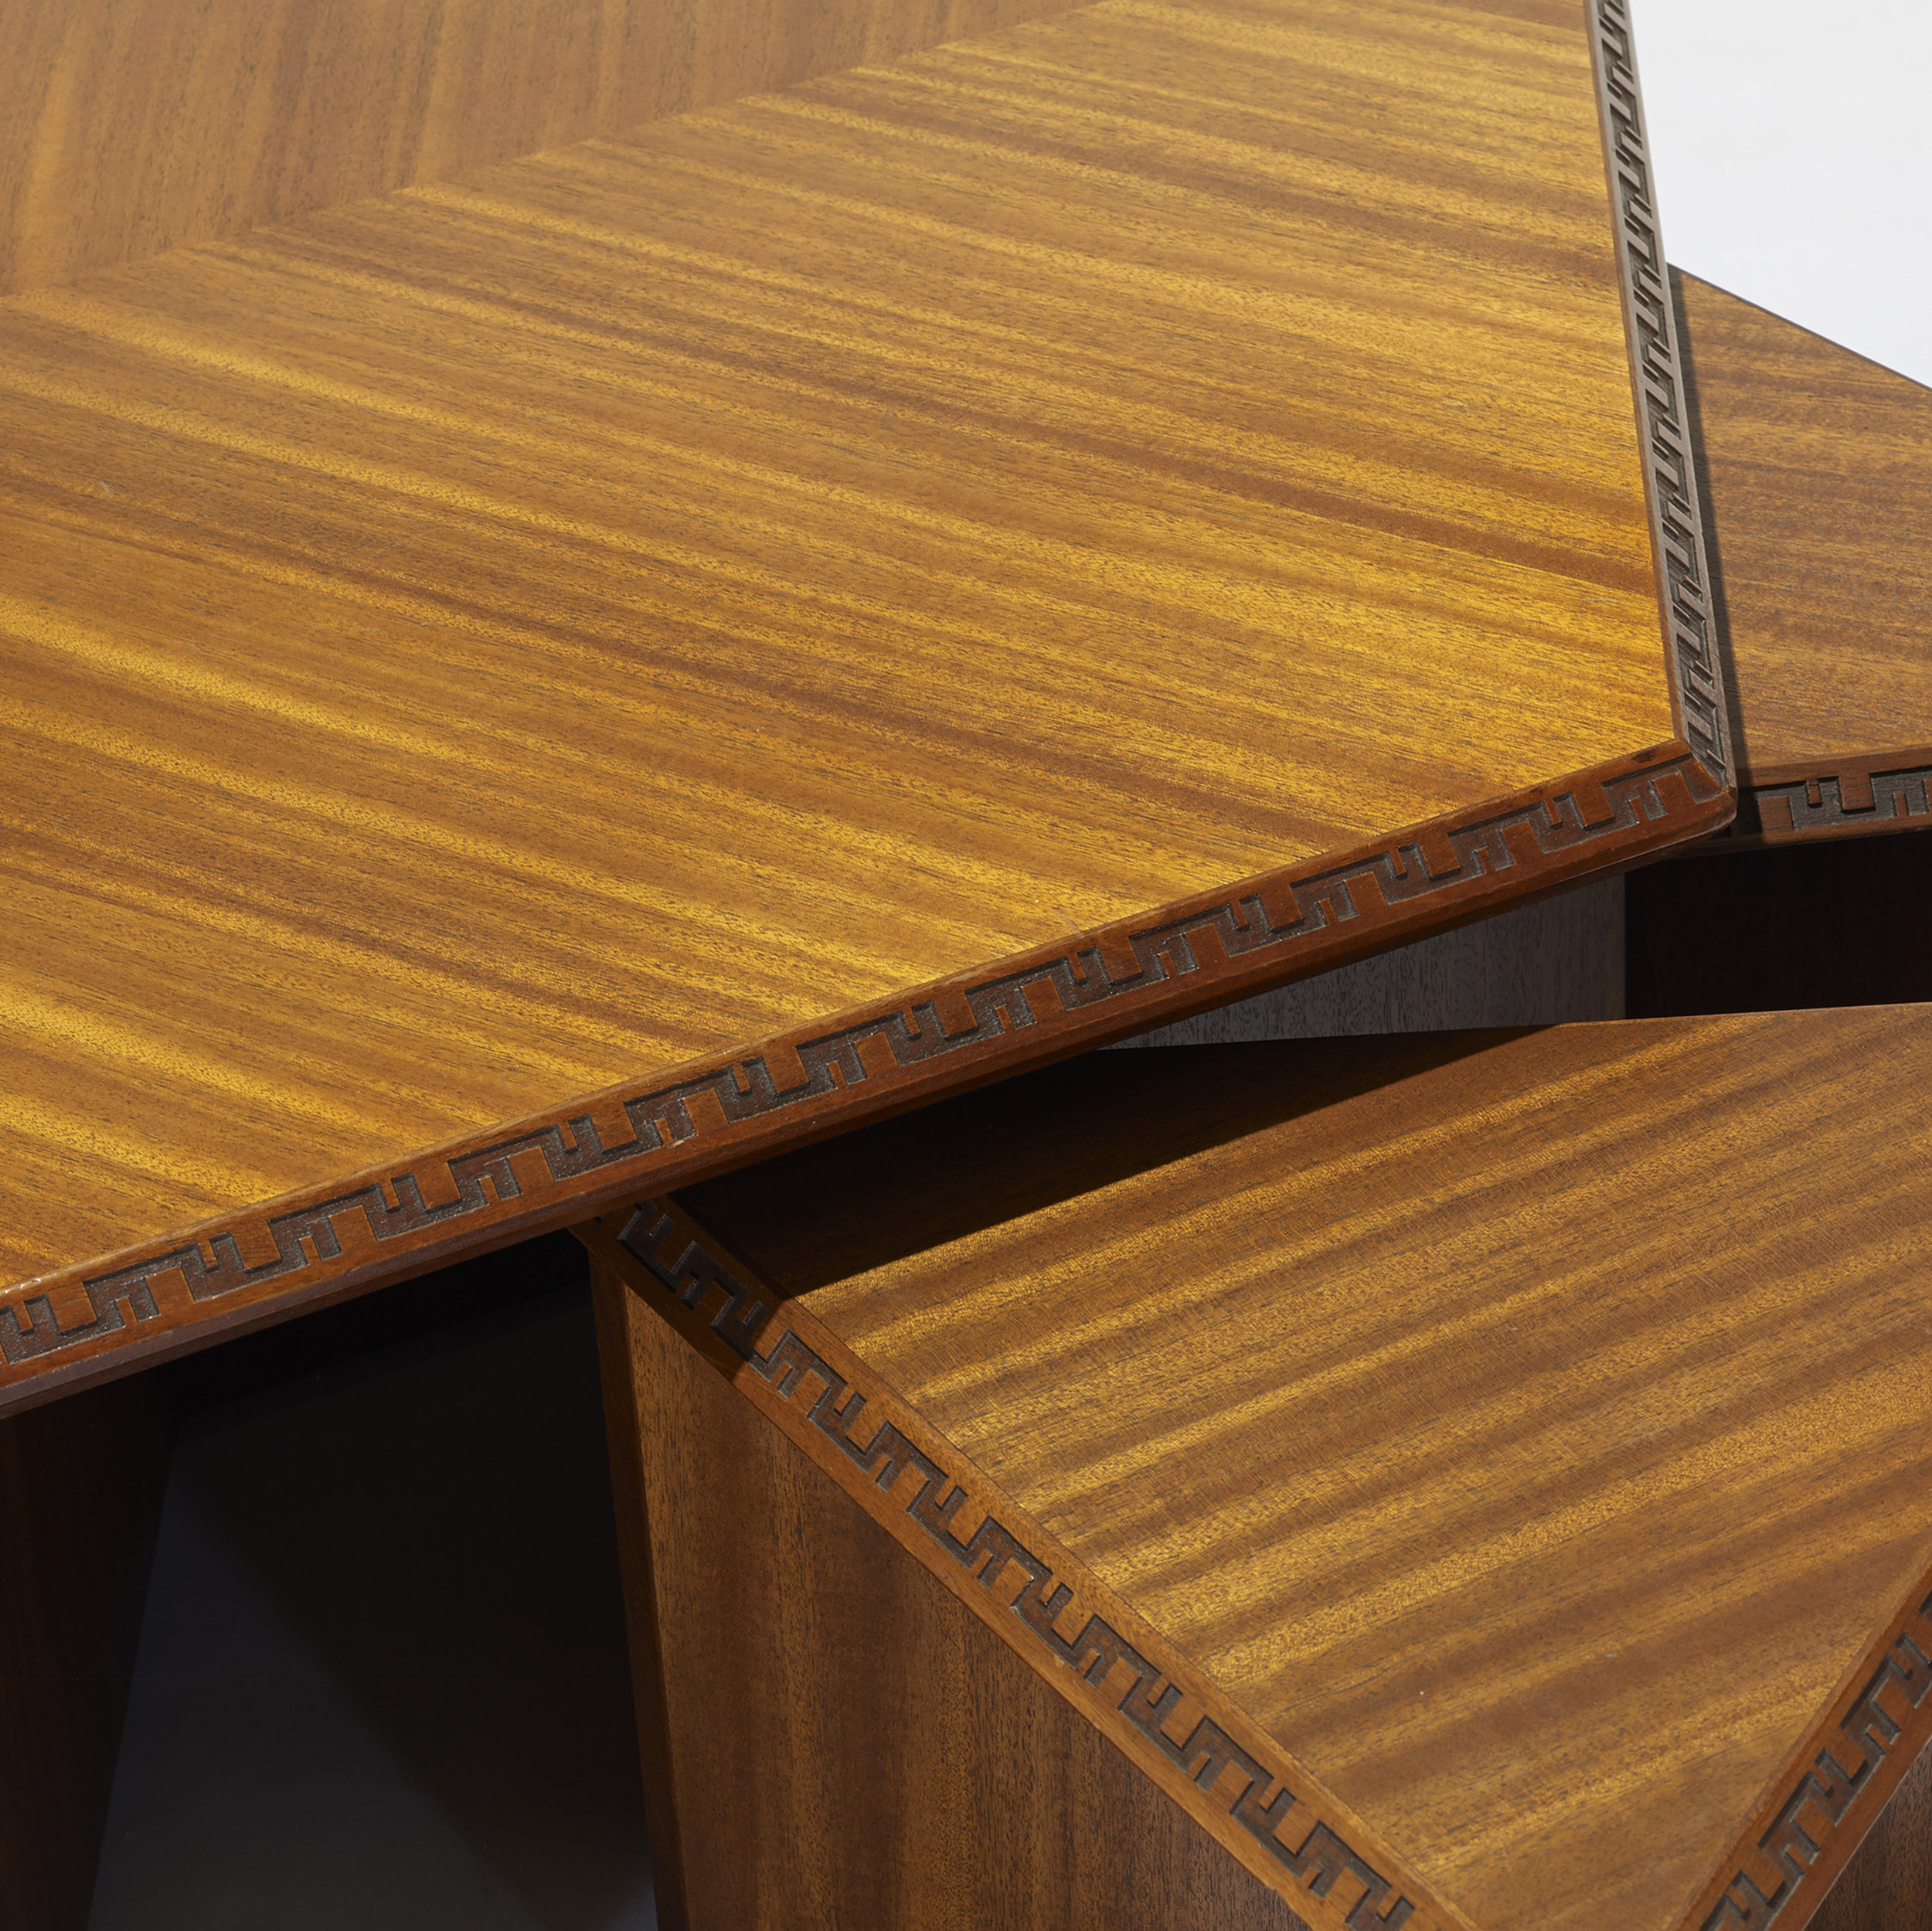 243_3_modern_design_march_2013_frank_lloyd_wright_table_model_453_c_and_six_stools_model_452_a__wright_auction.jpg